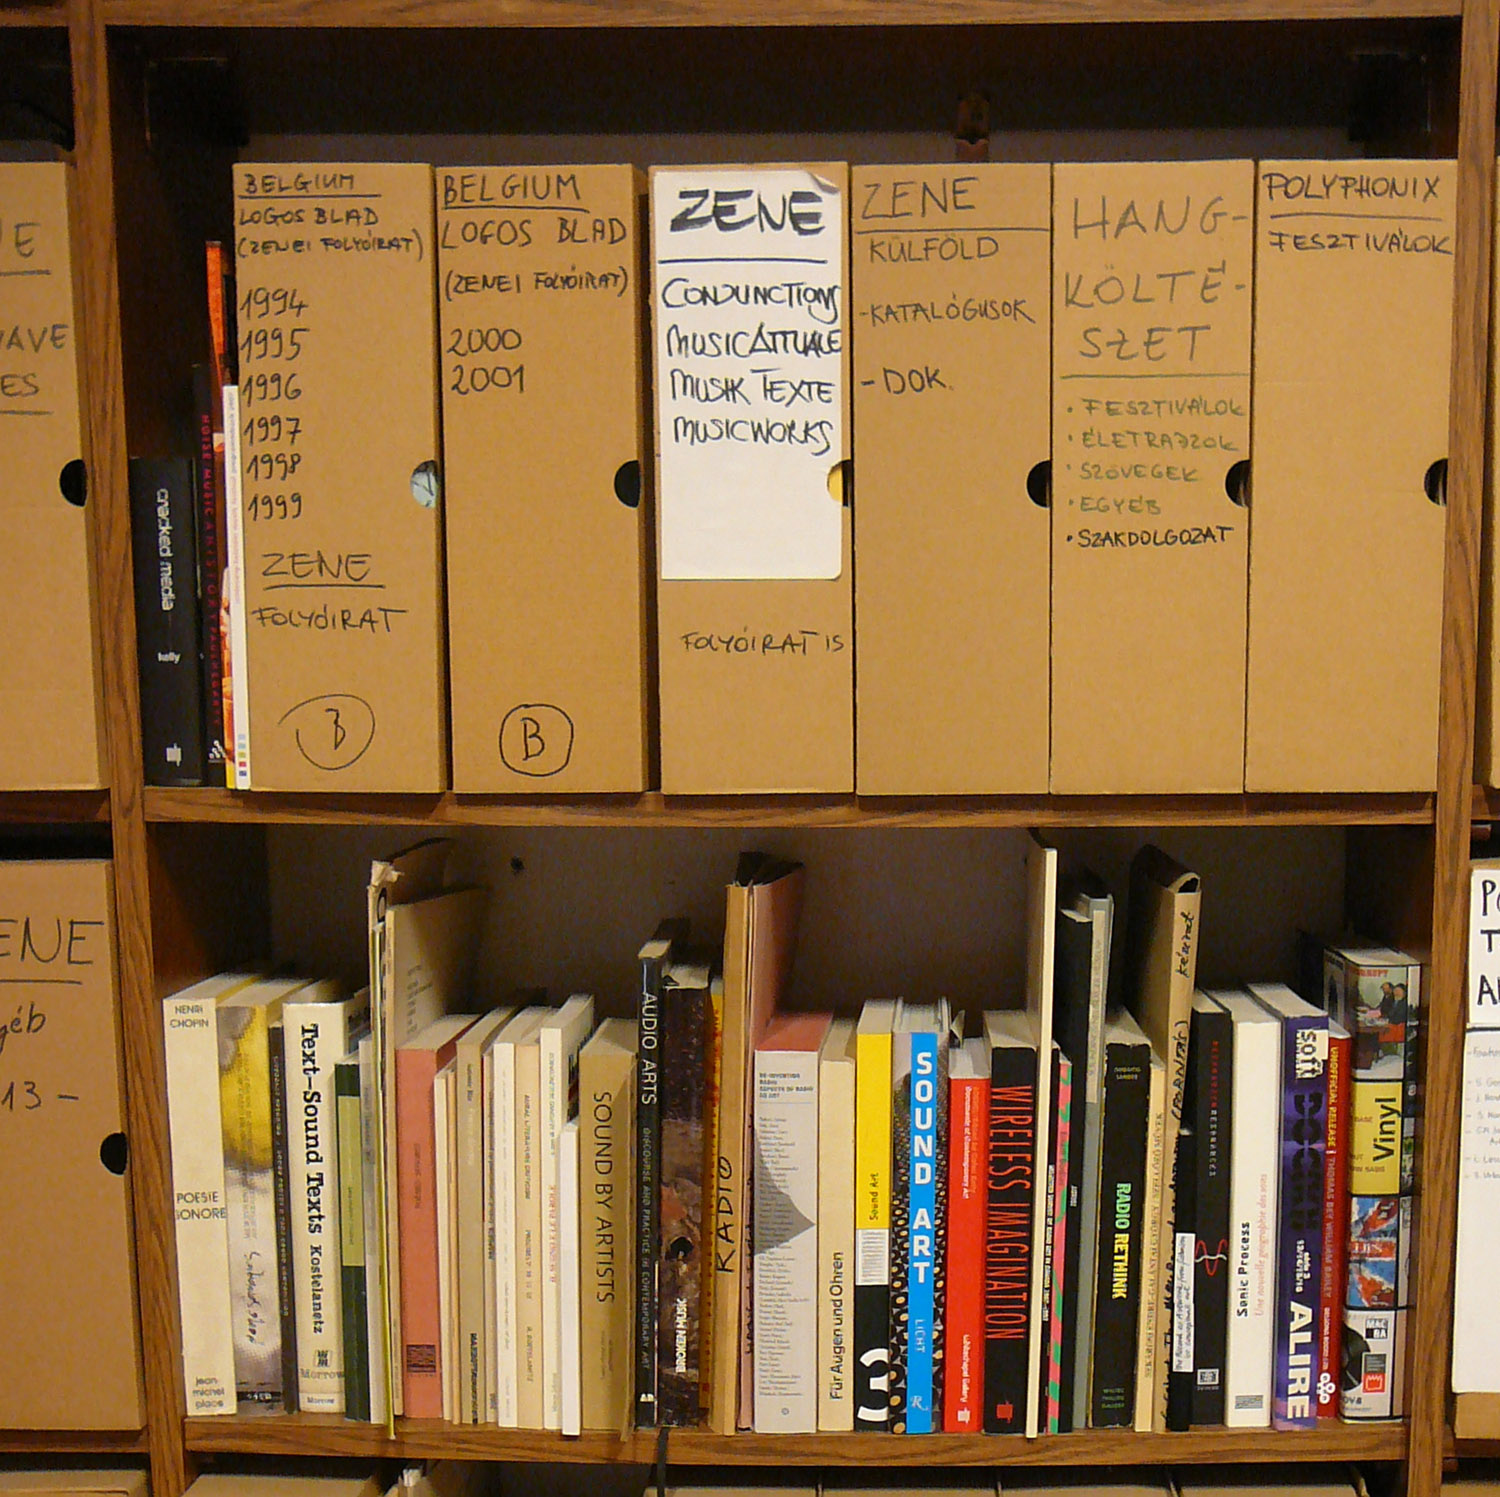 A bookshelf with general literature about sound poetry at Artpool Art Research Center.